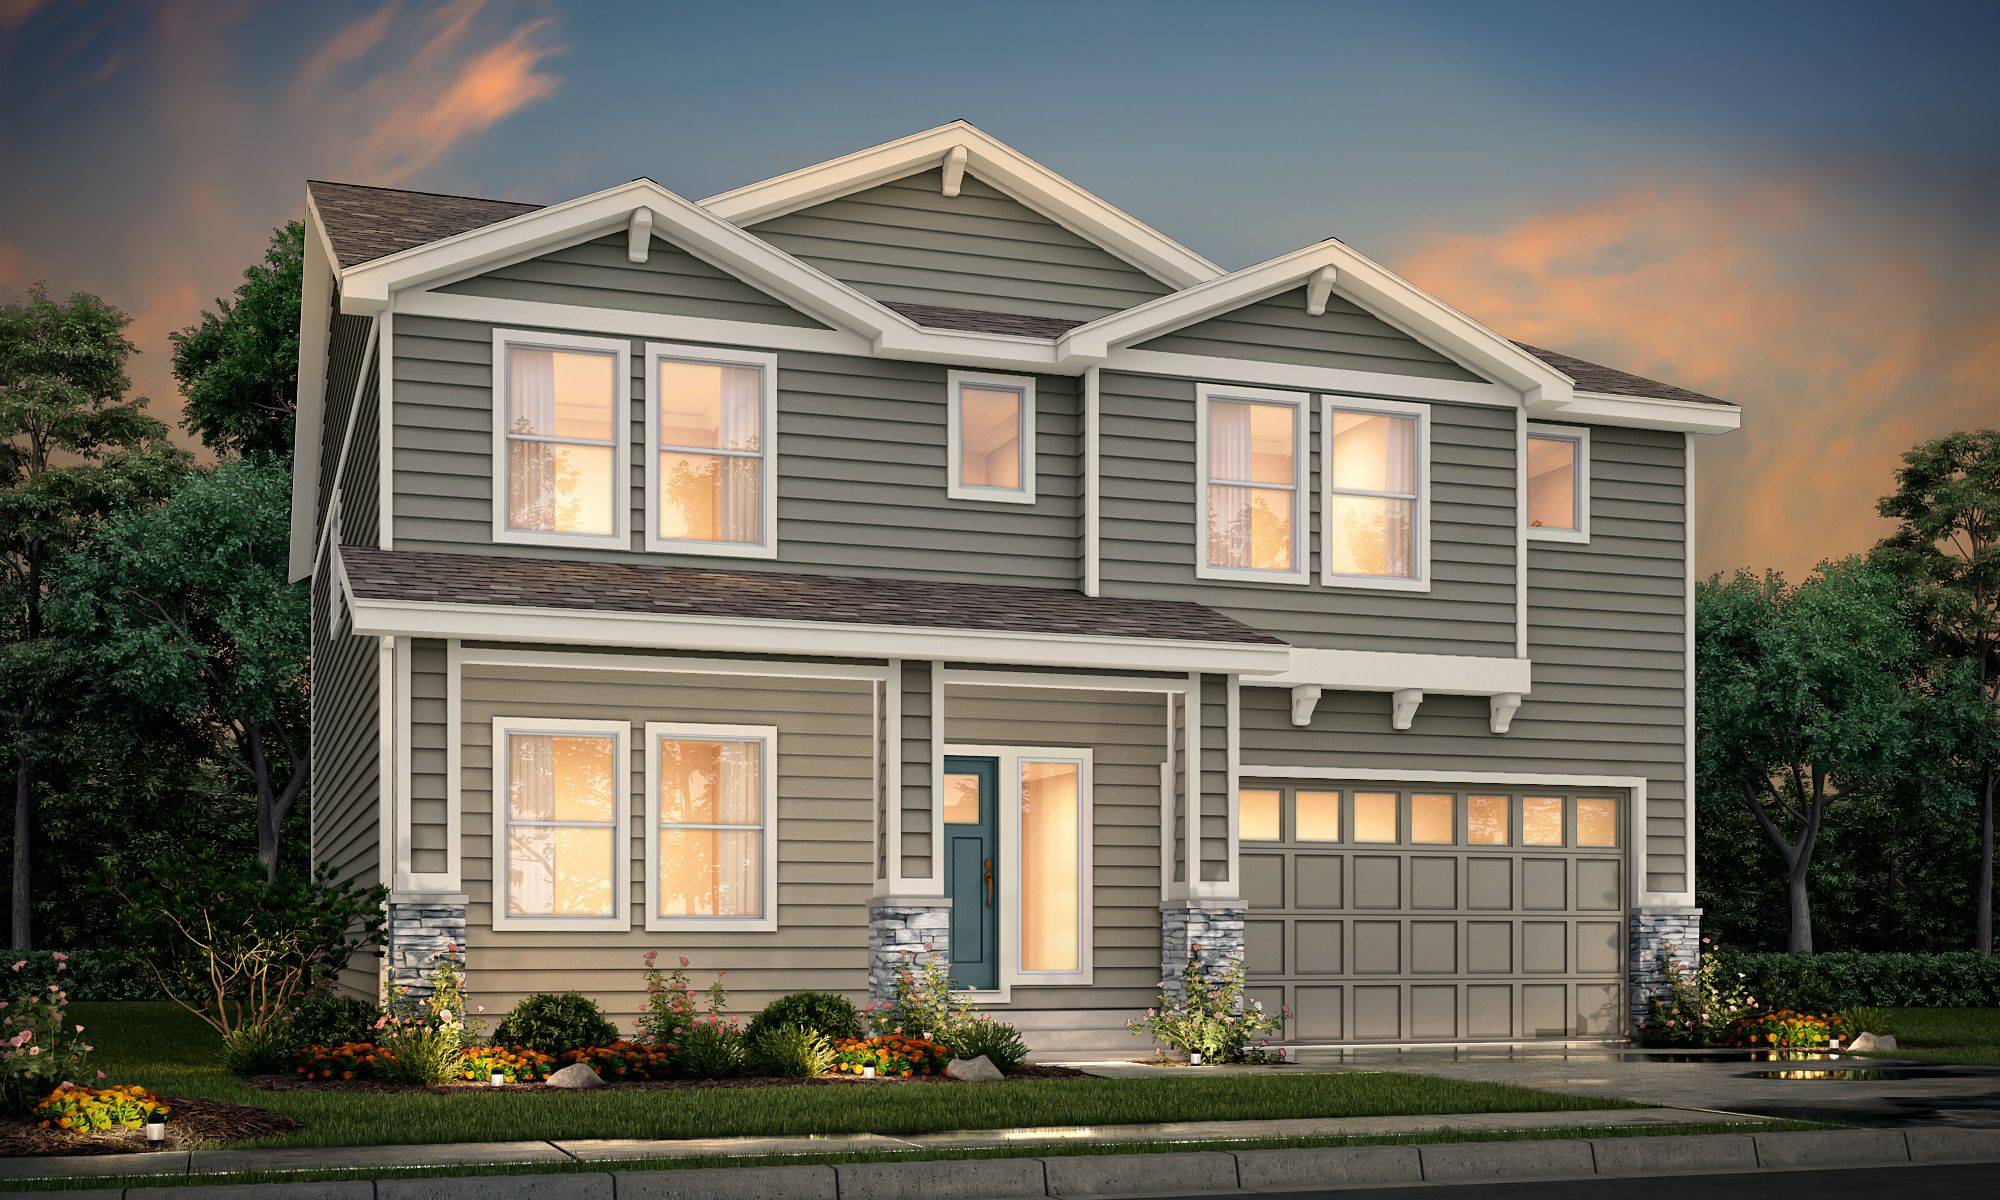 Exterior featured in the Nantucket at Sorrento By View Homes Northern Colorado in Greeley, CO